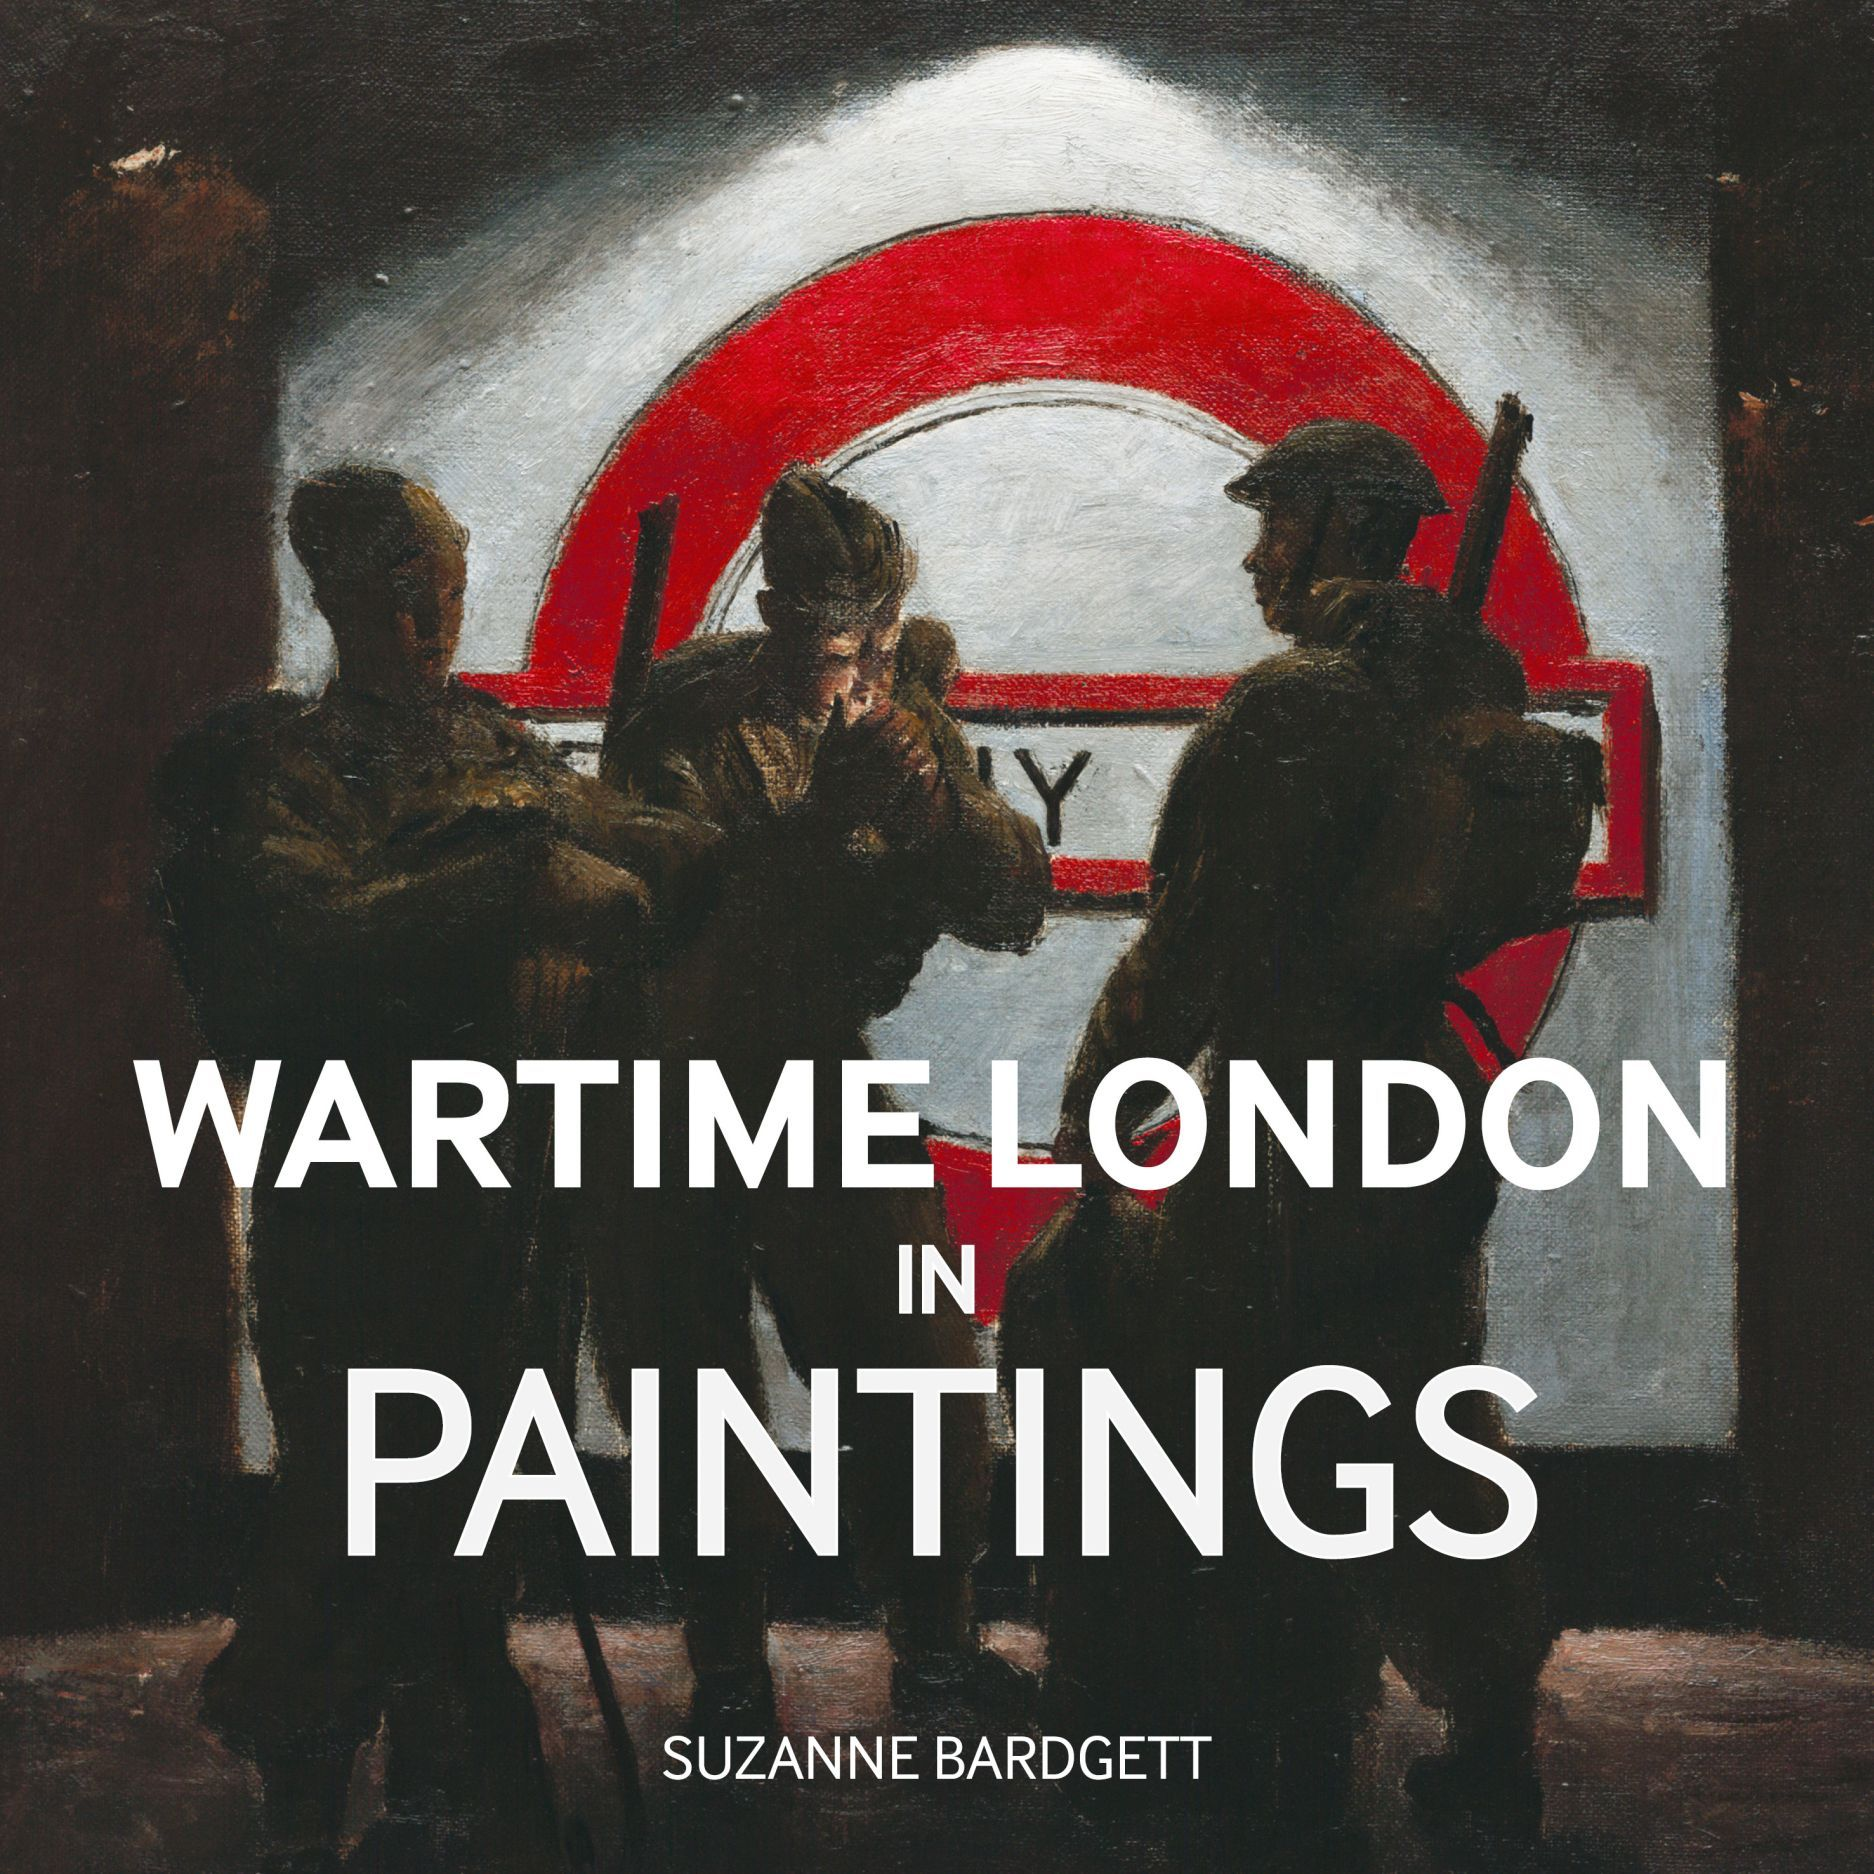 Wartime London in Paintings